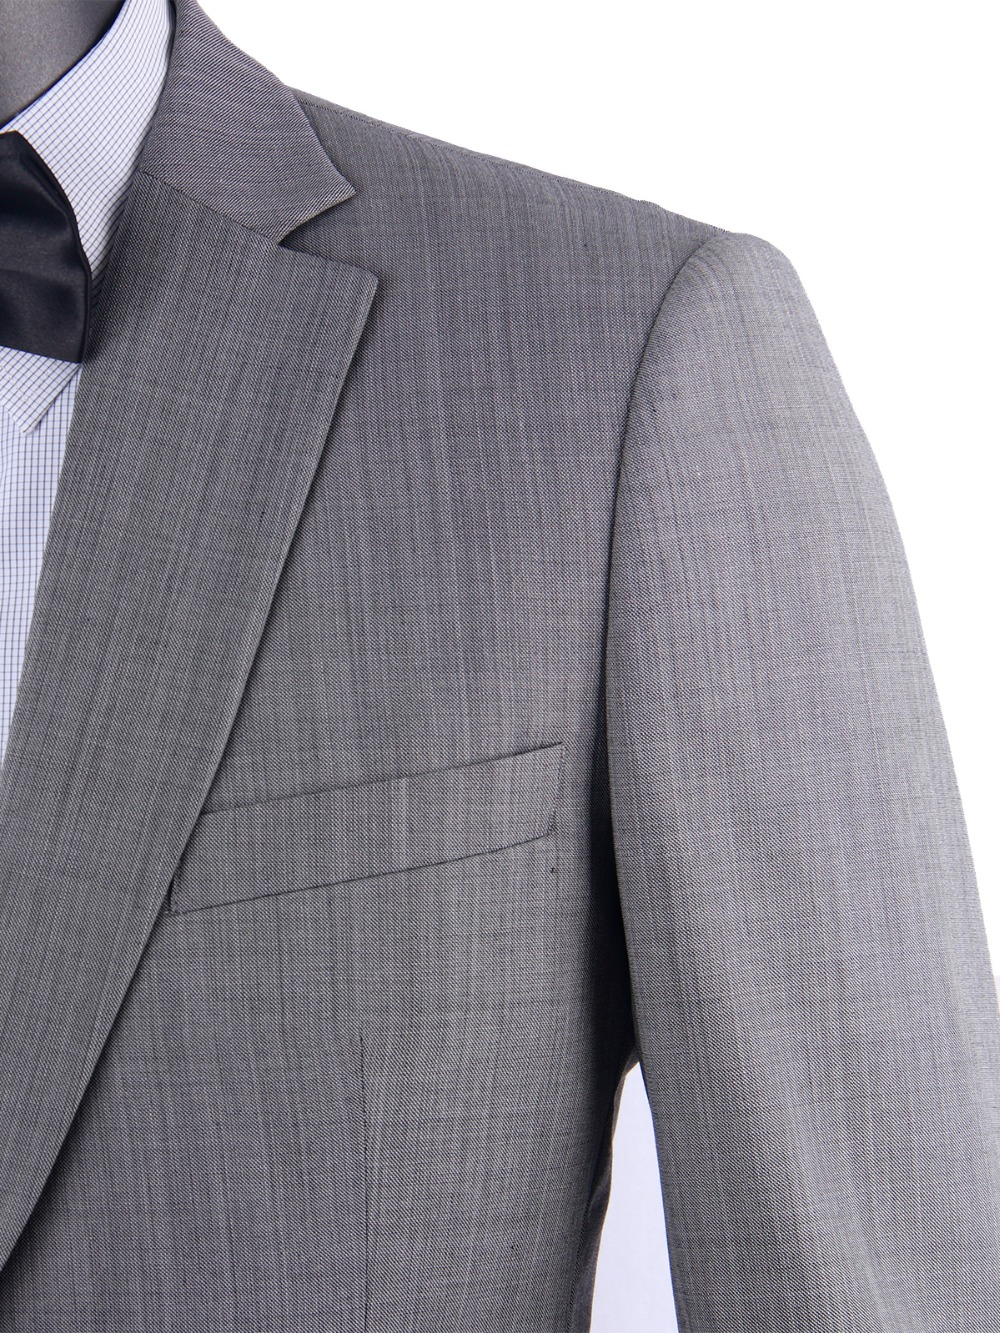 Stylish Grey Sharkskin Business Men Suits Tailor Made Slim Fit Smooth Worsted Wool Blend Wedding Suits For Men Groom Suit